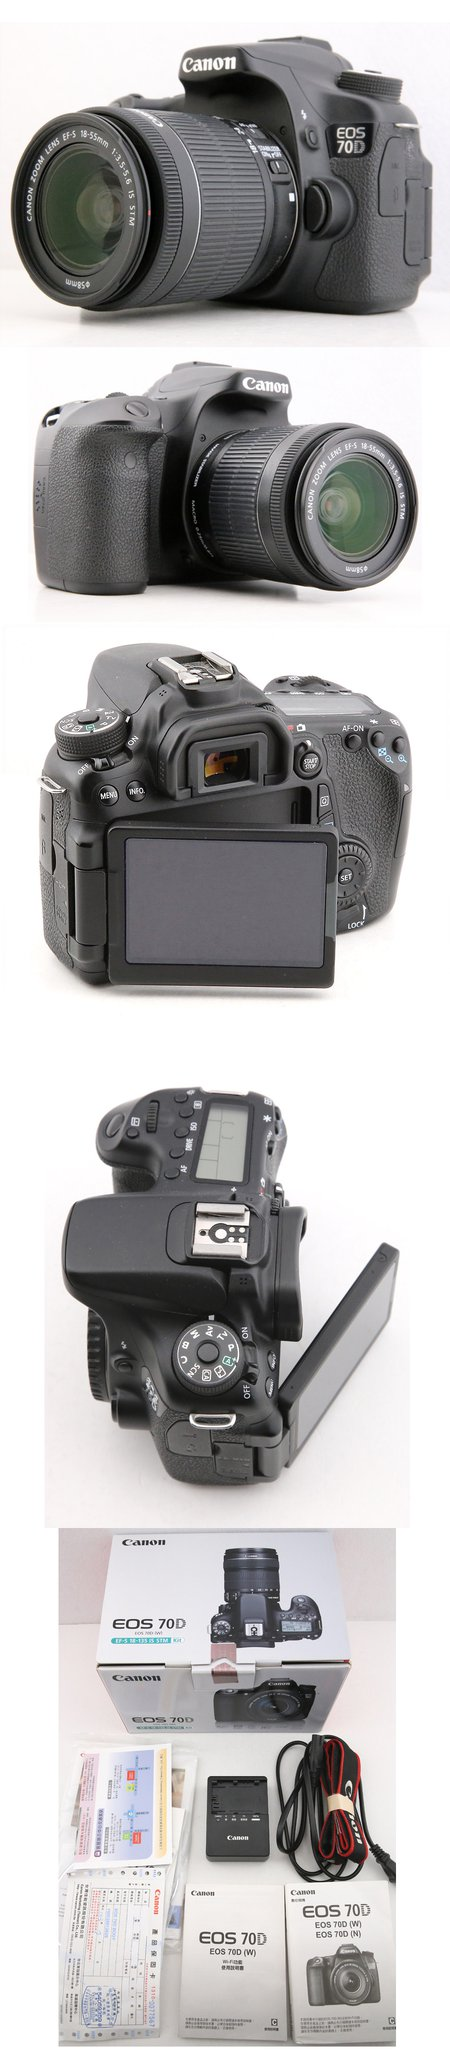 Canon 70D #1080xx + 18-55mm IS STM